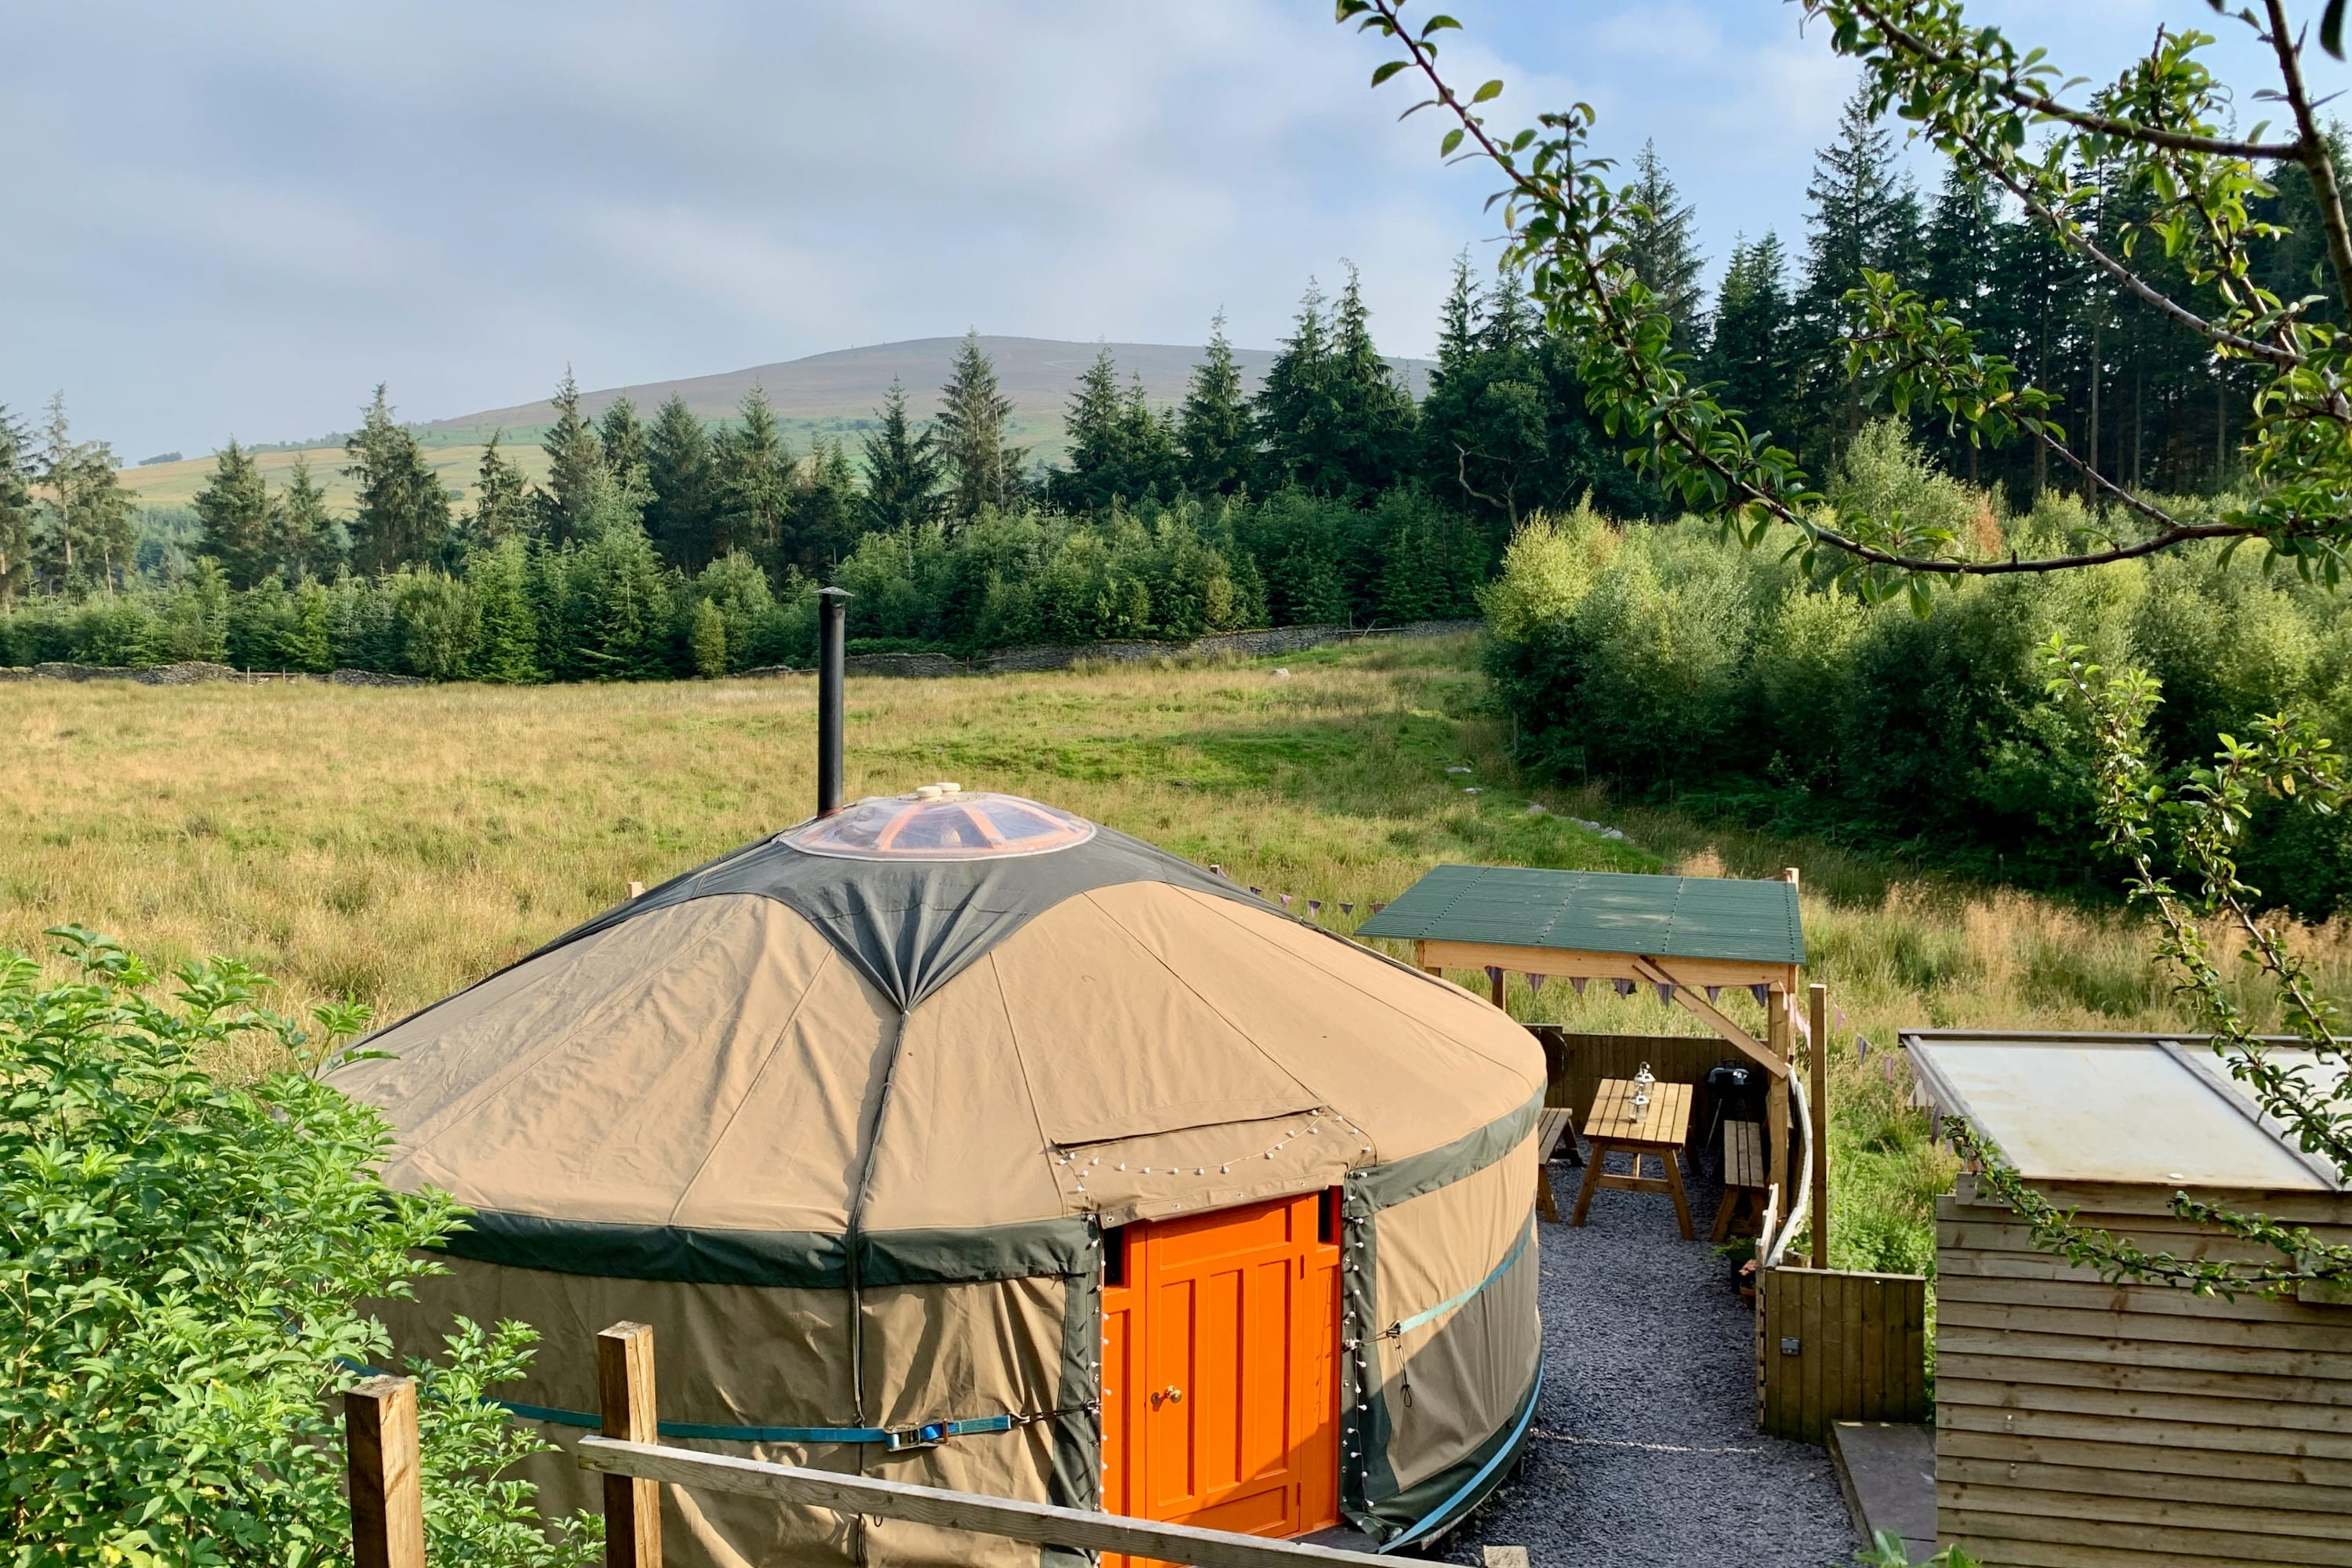 Ty crwn mawr yurt outside new cover 4 off grid sustainable eco glampsite and glamping